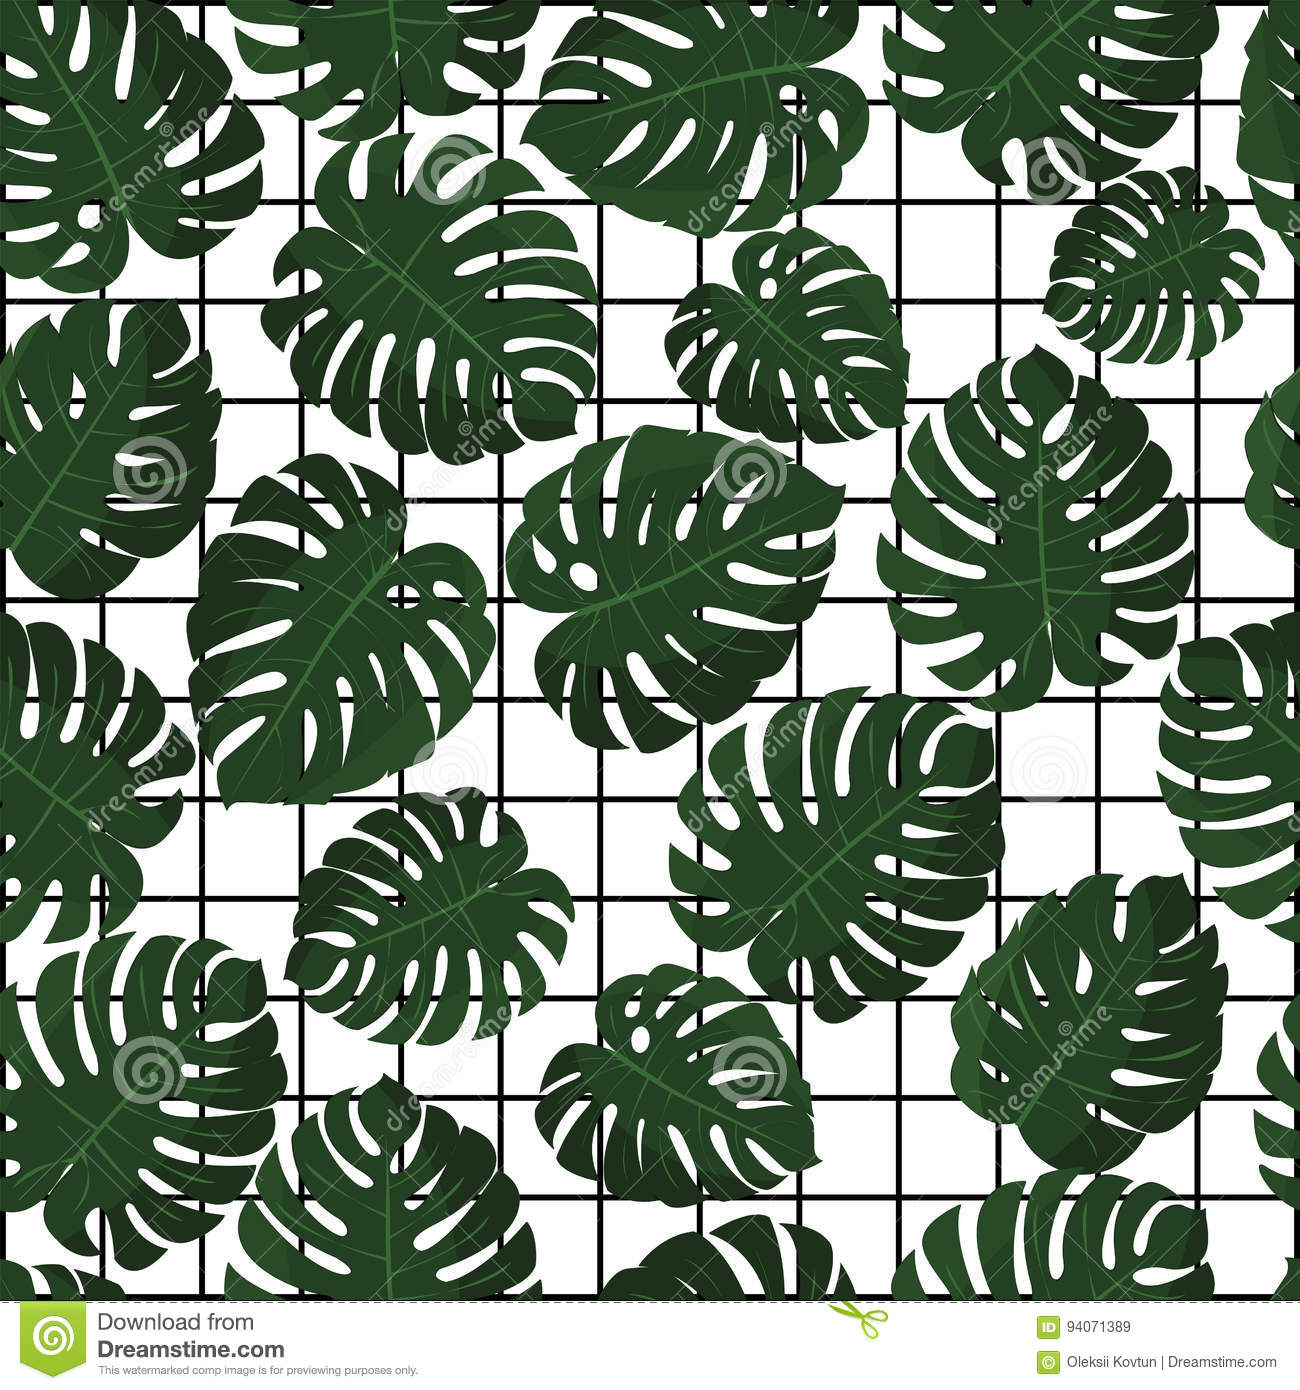 Download Tropical Leaves Vector Seamless Pattern In Swatch Jungle Wallpaper Hawaii